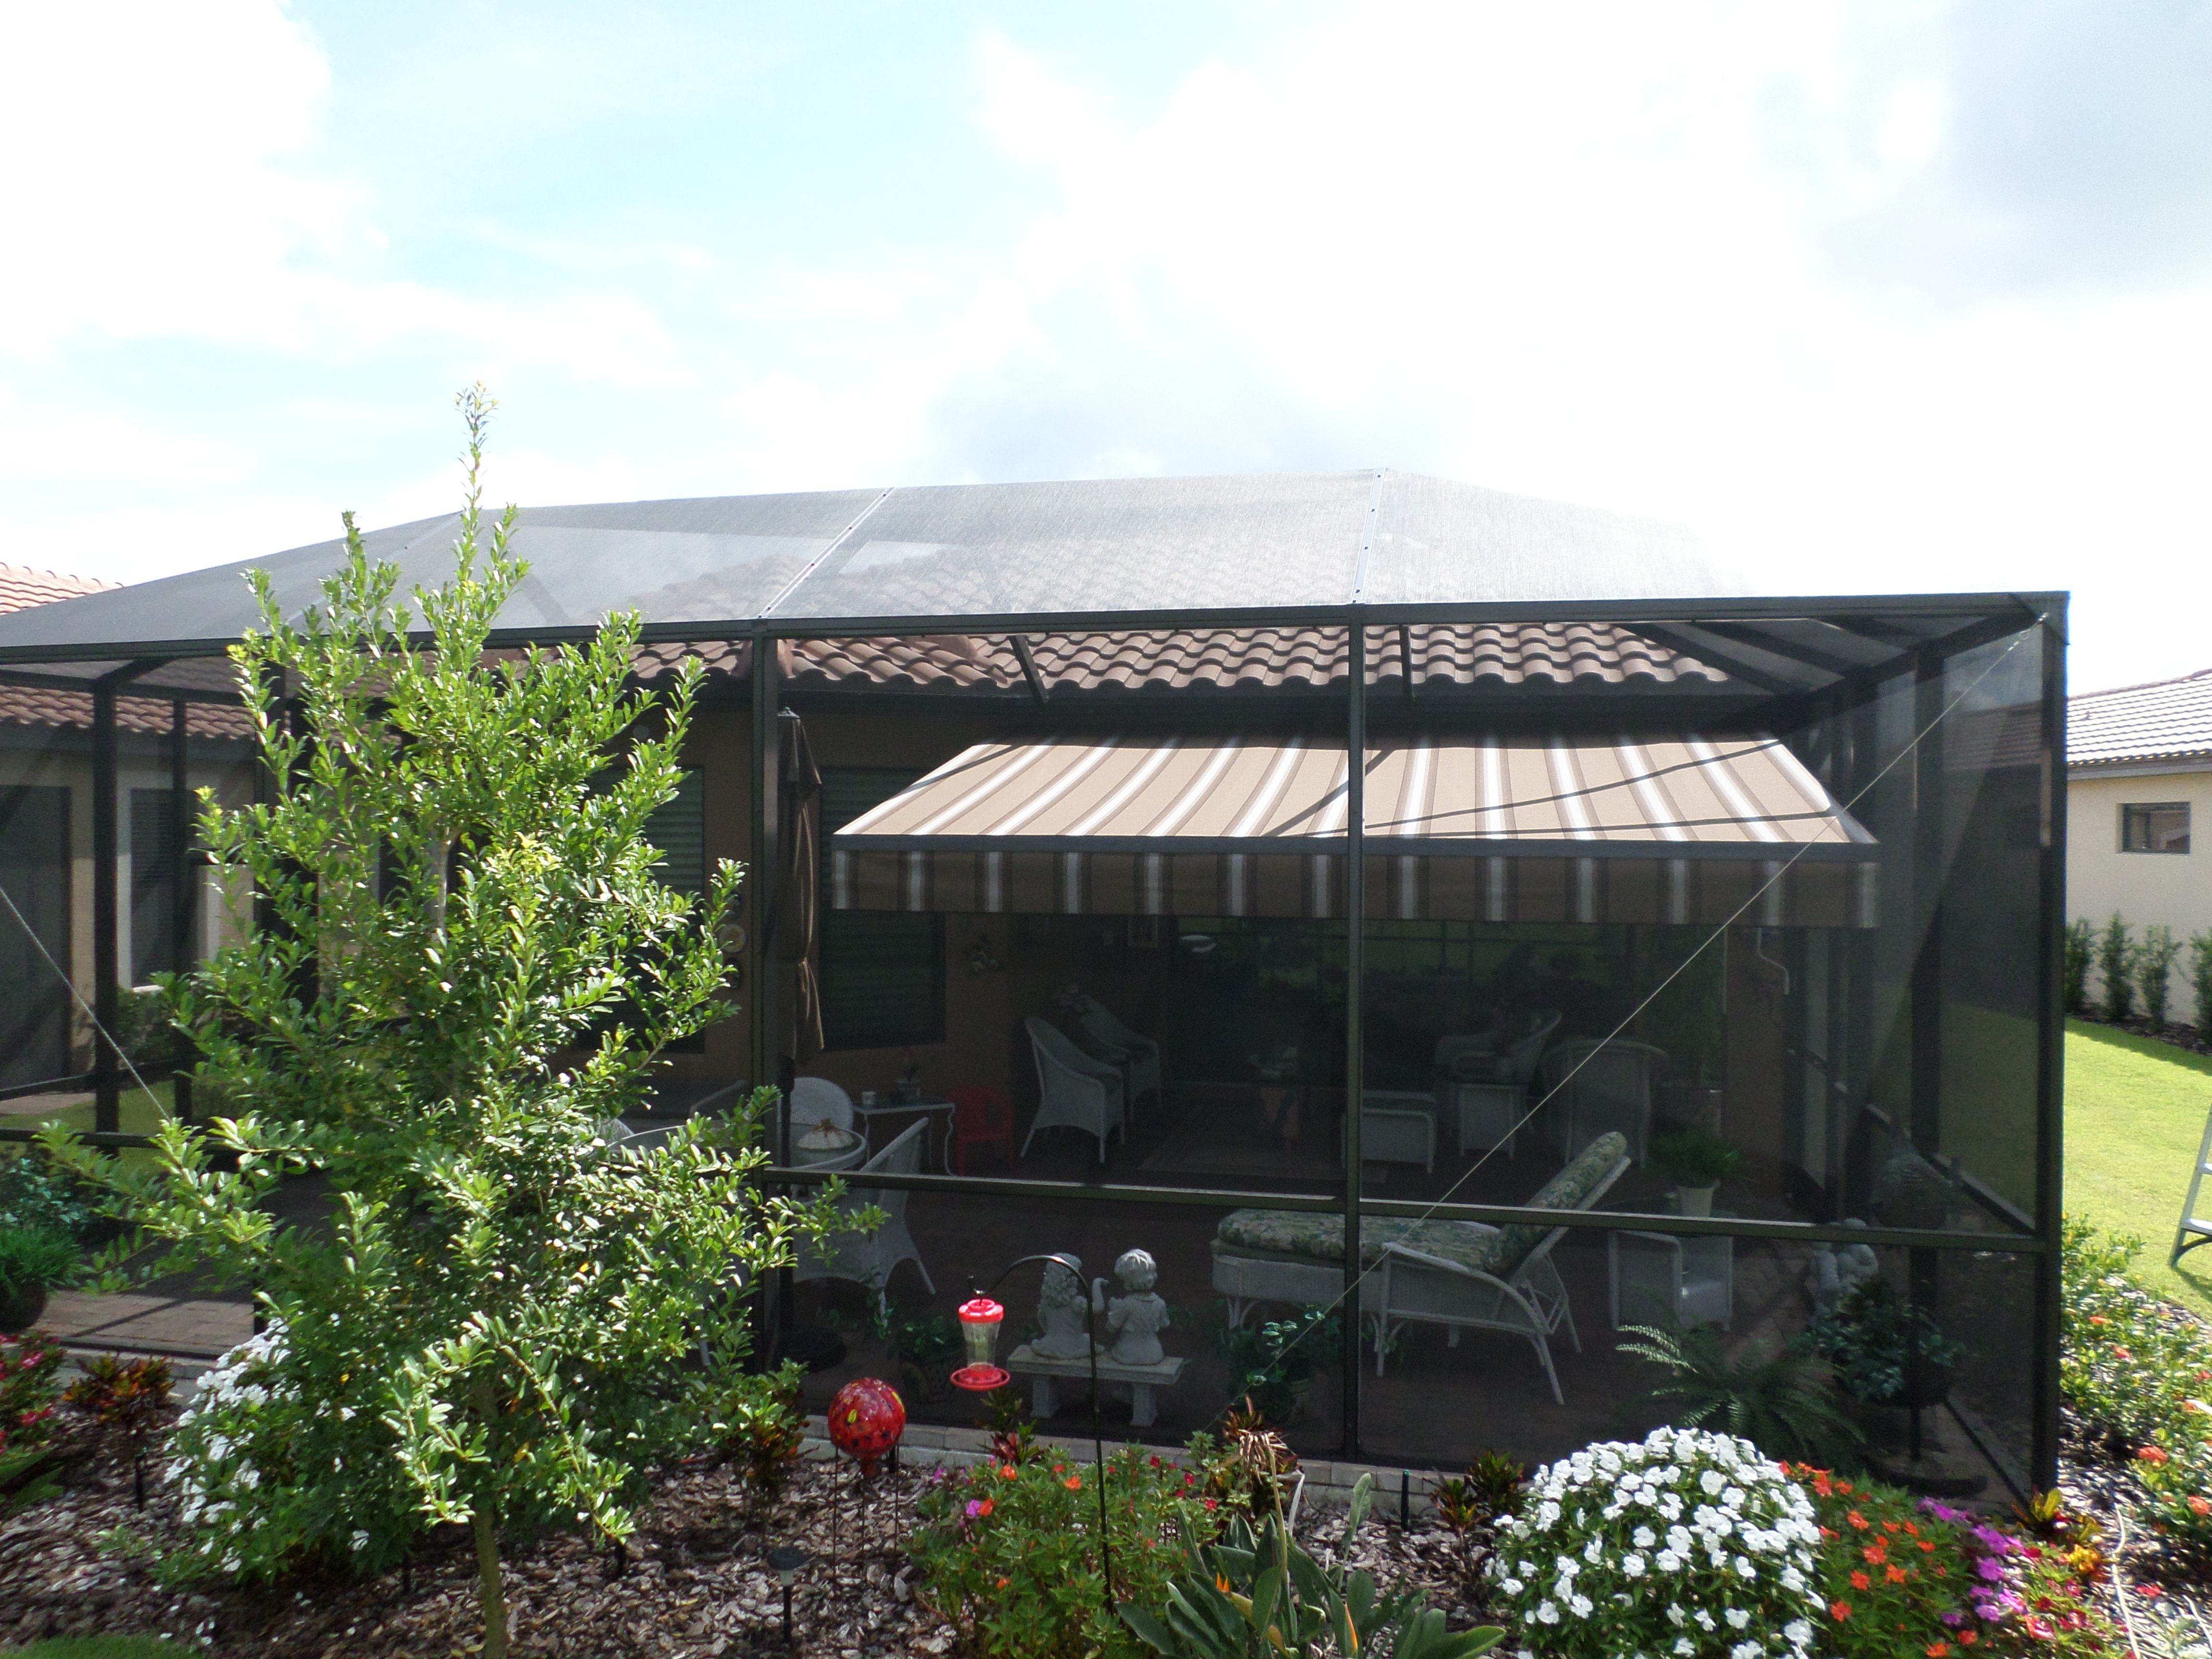 Eclipse Awning By Shade And Shield Installed Inside A Pool Cage